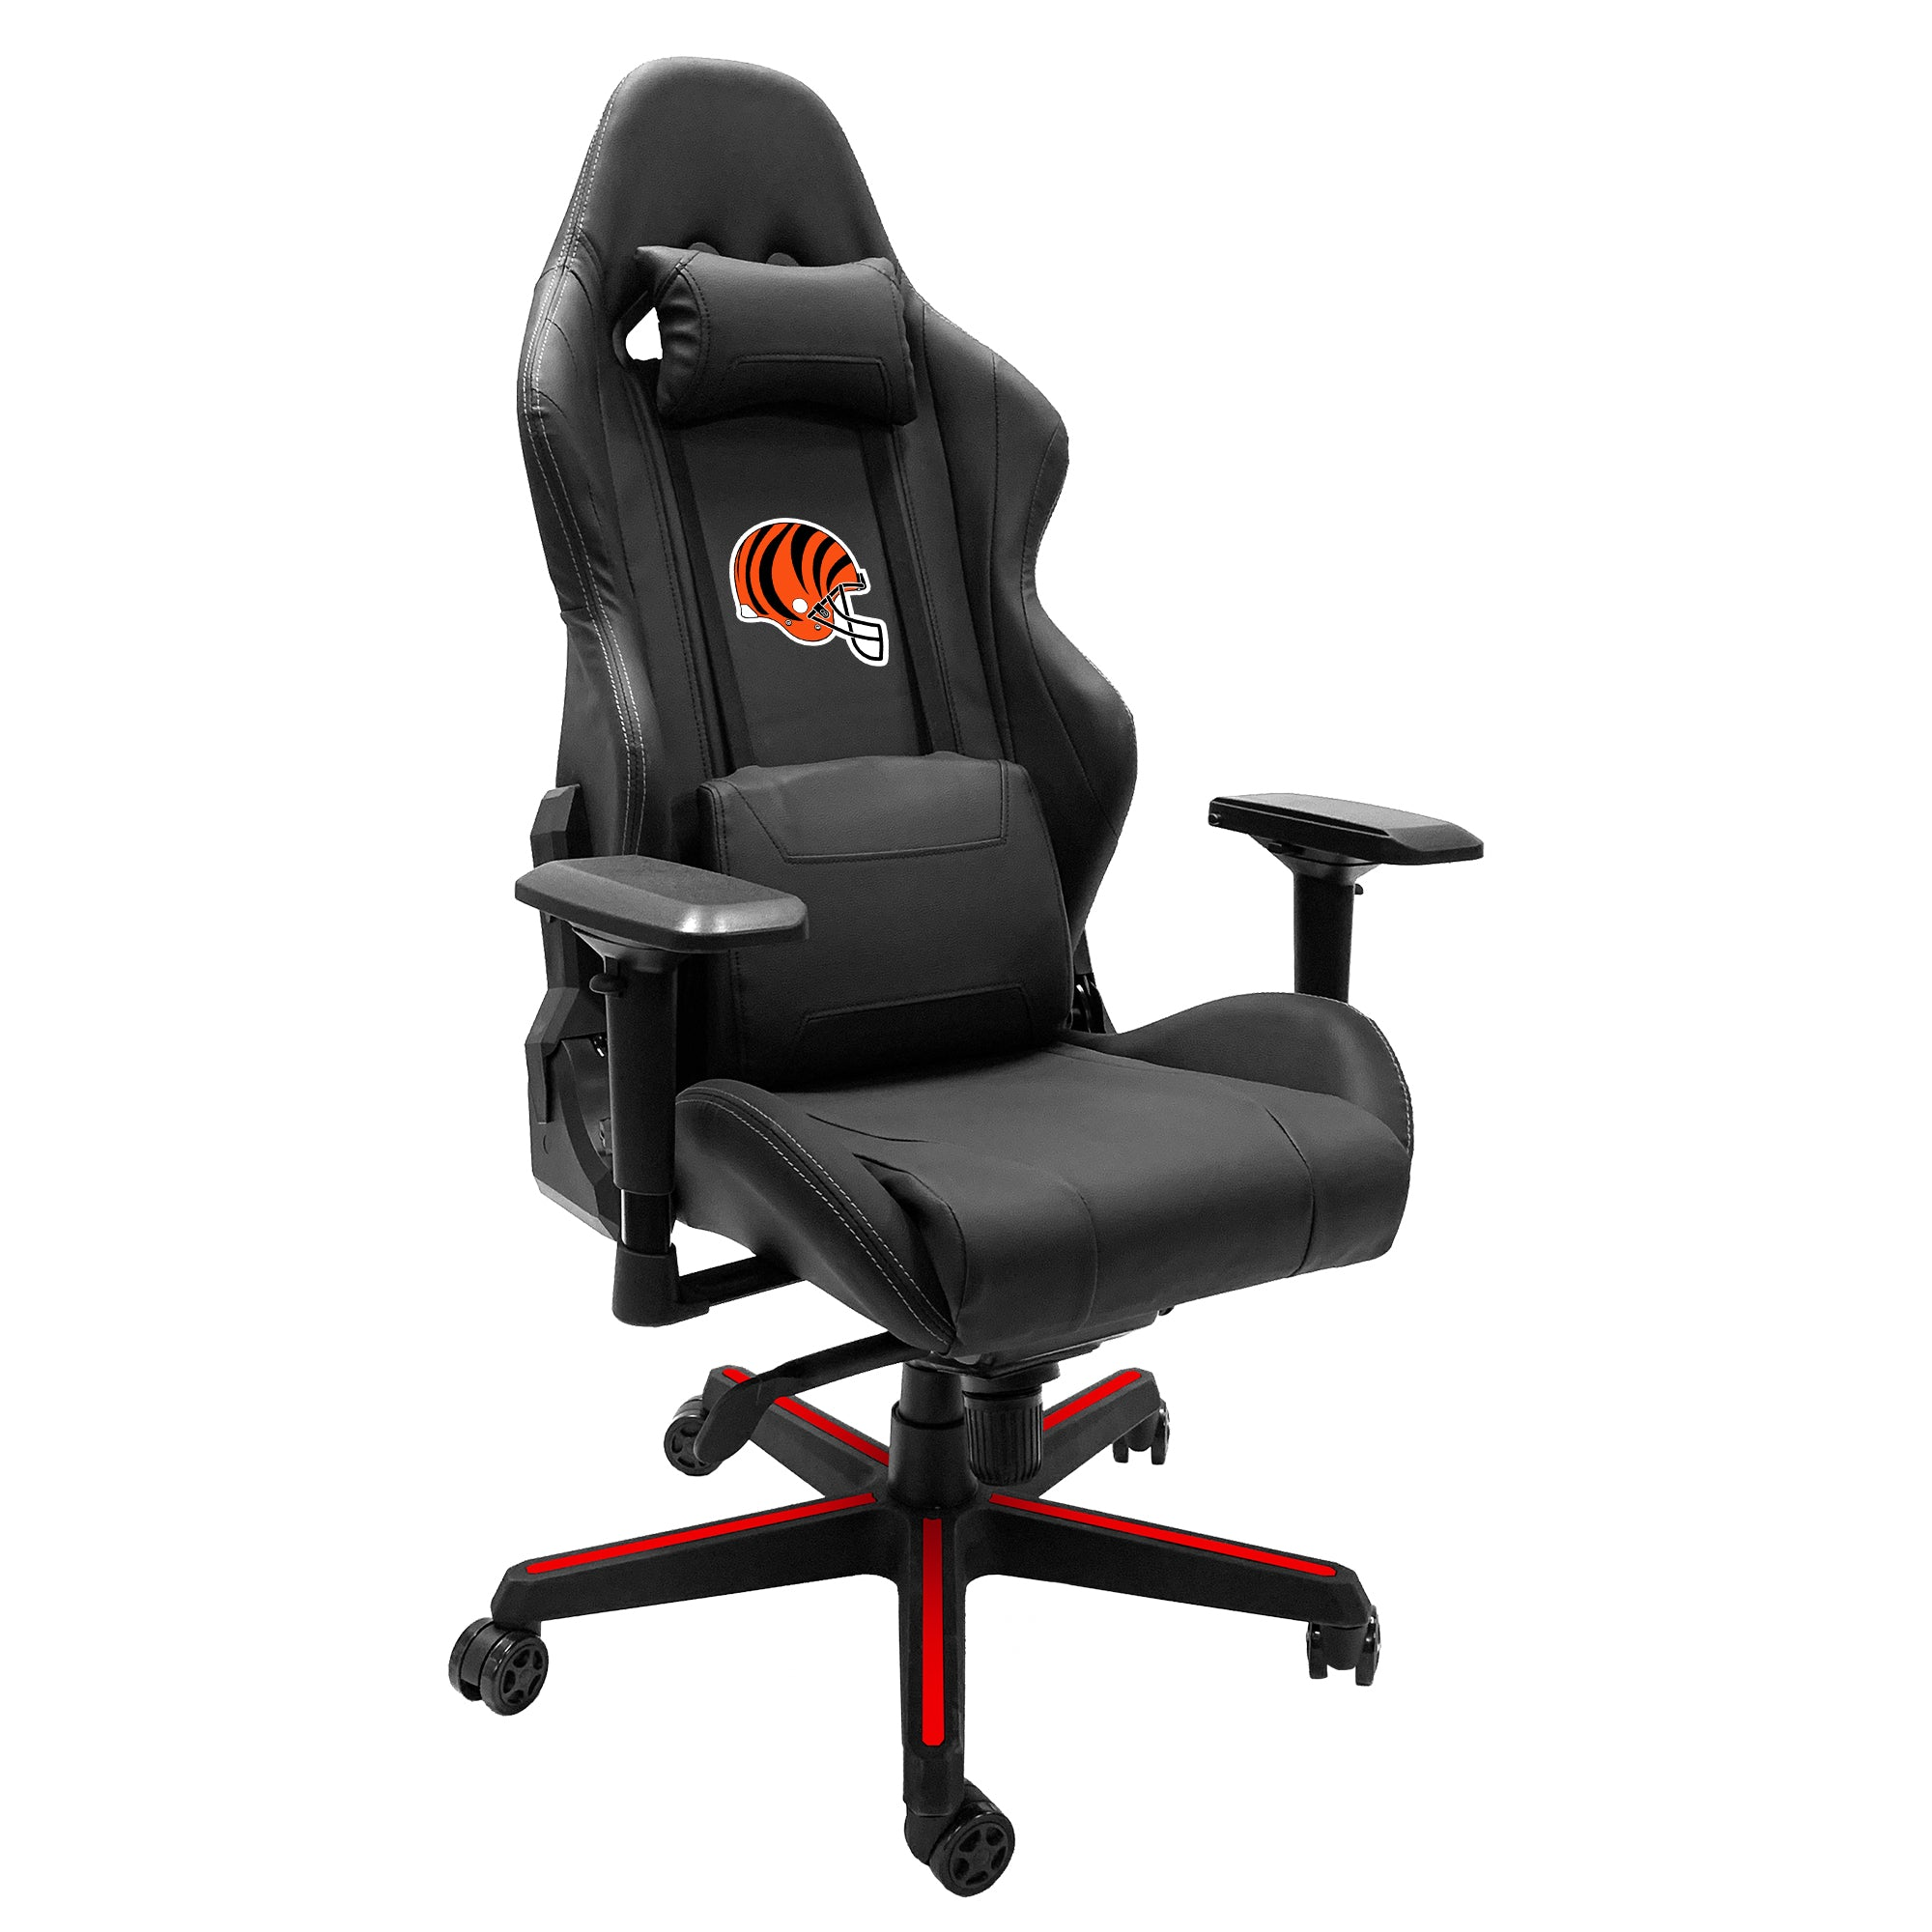 Xpression Gaming Chair with  Cincinnati Bengals Helmet Logo